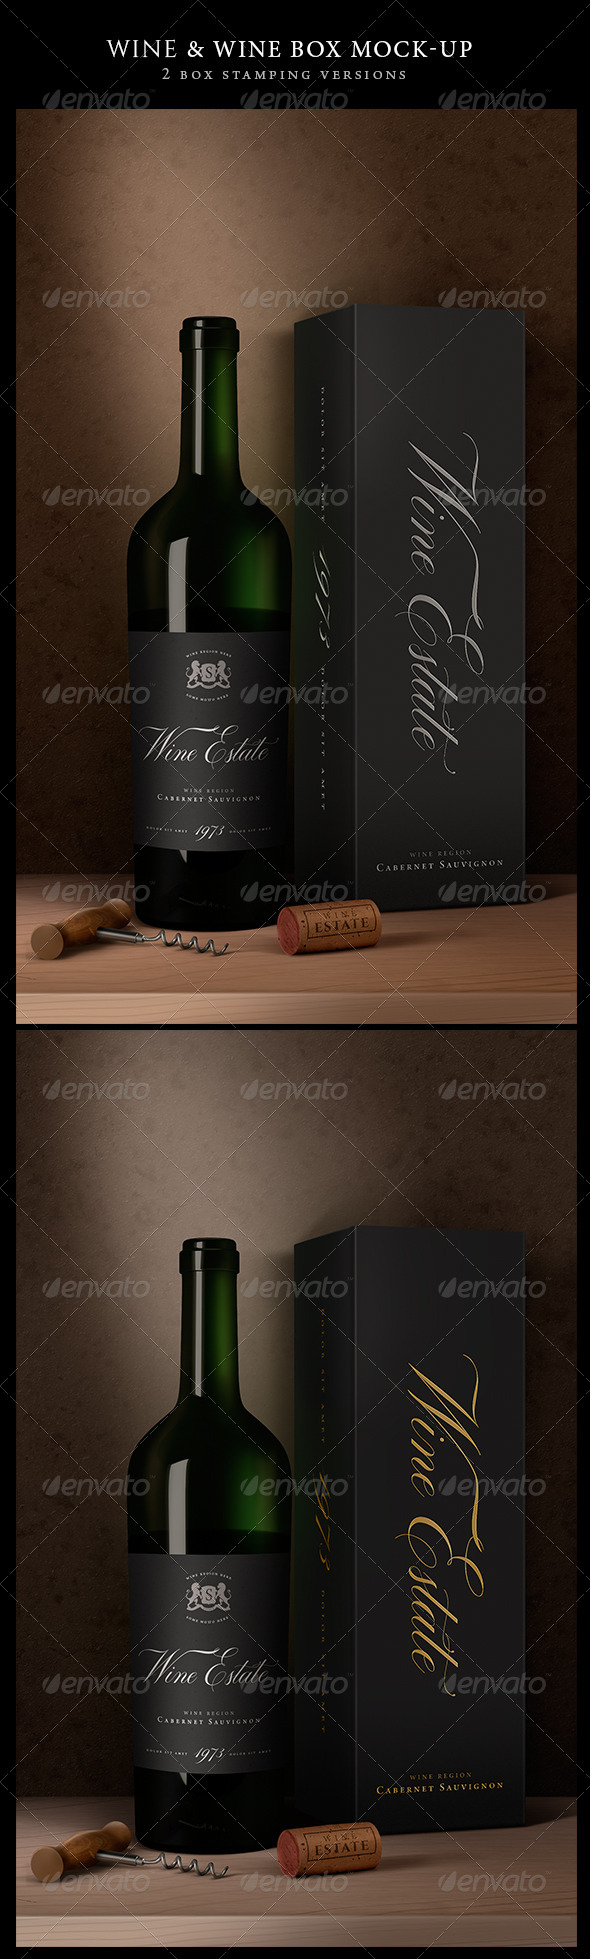 Wine Packaging Artistic Mock-Up